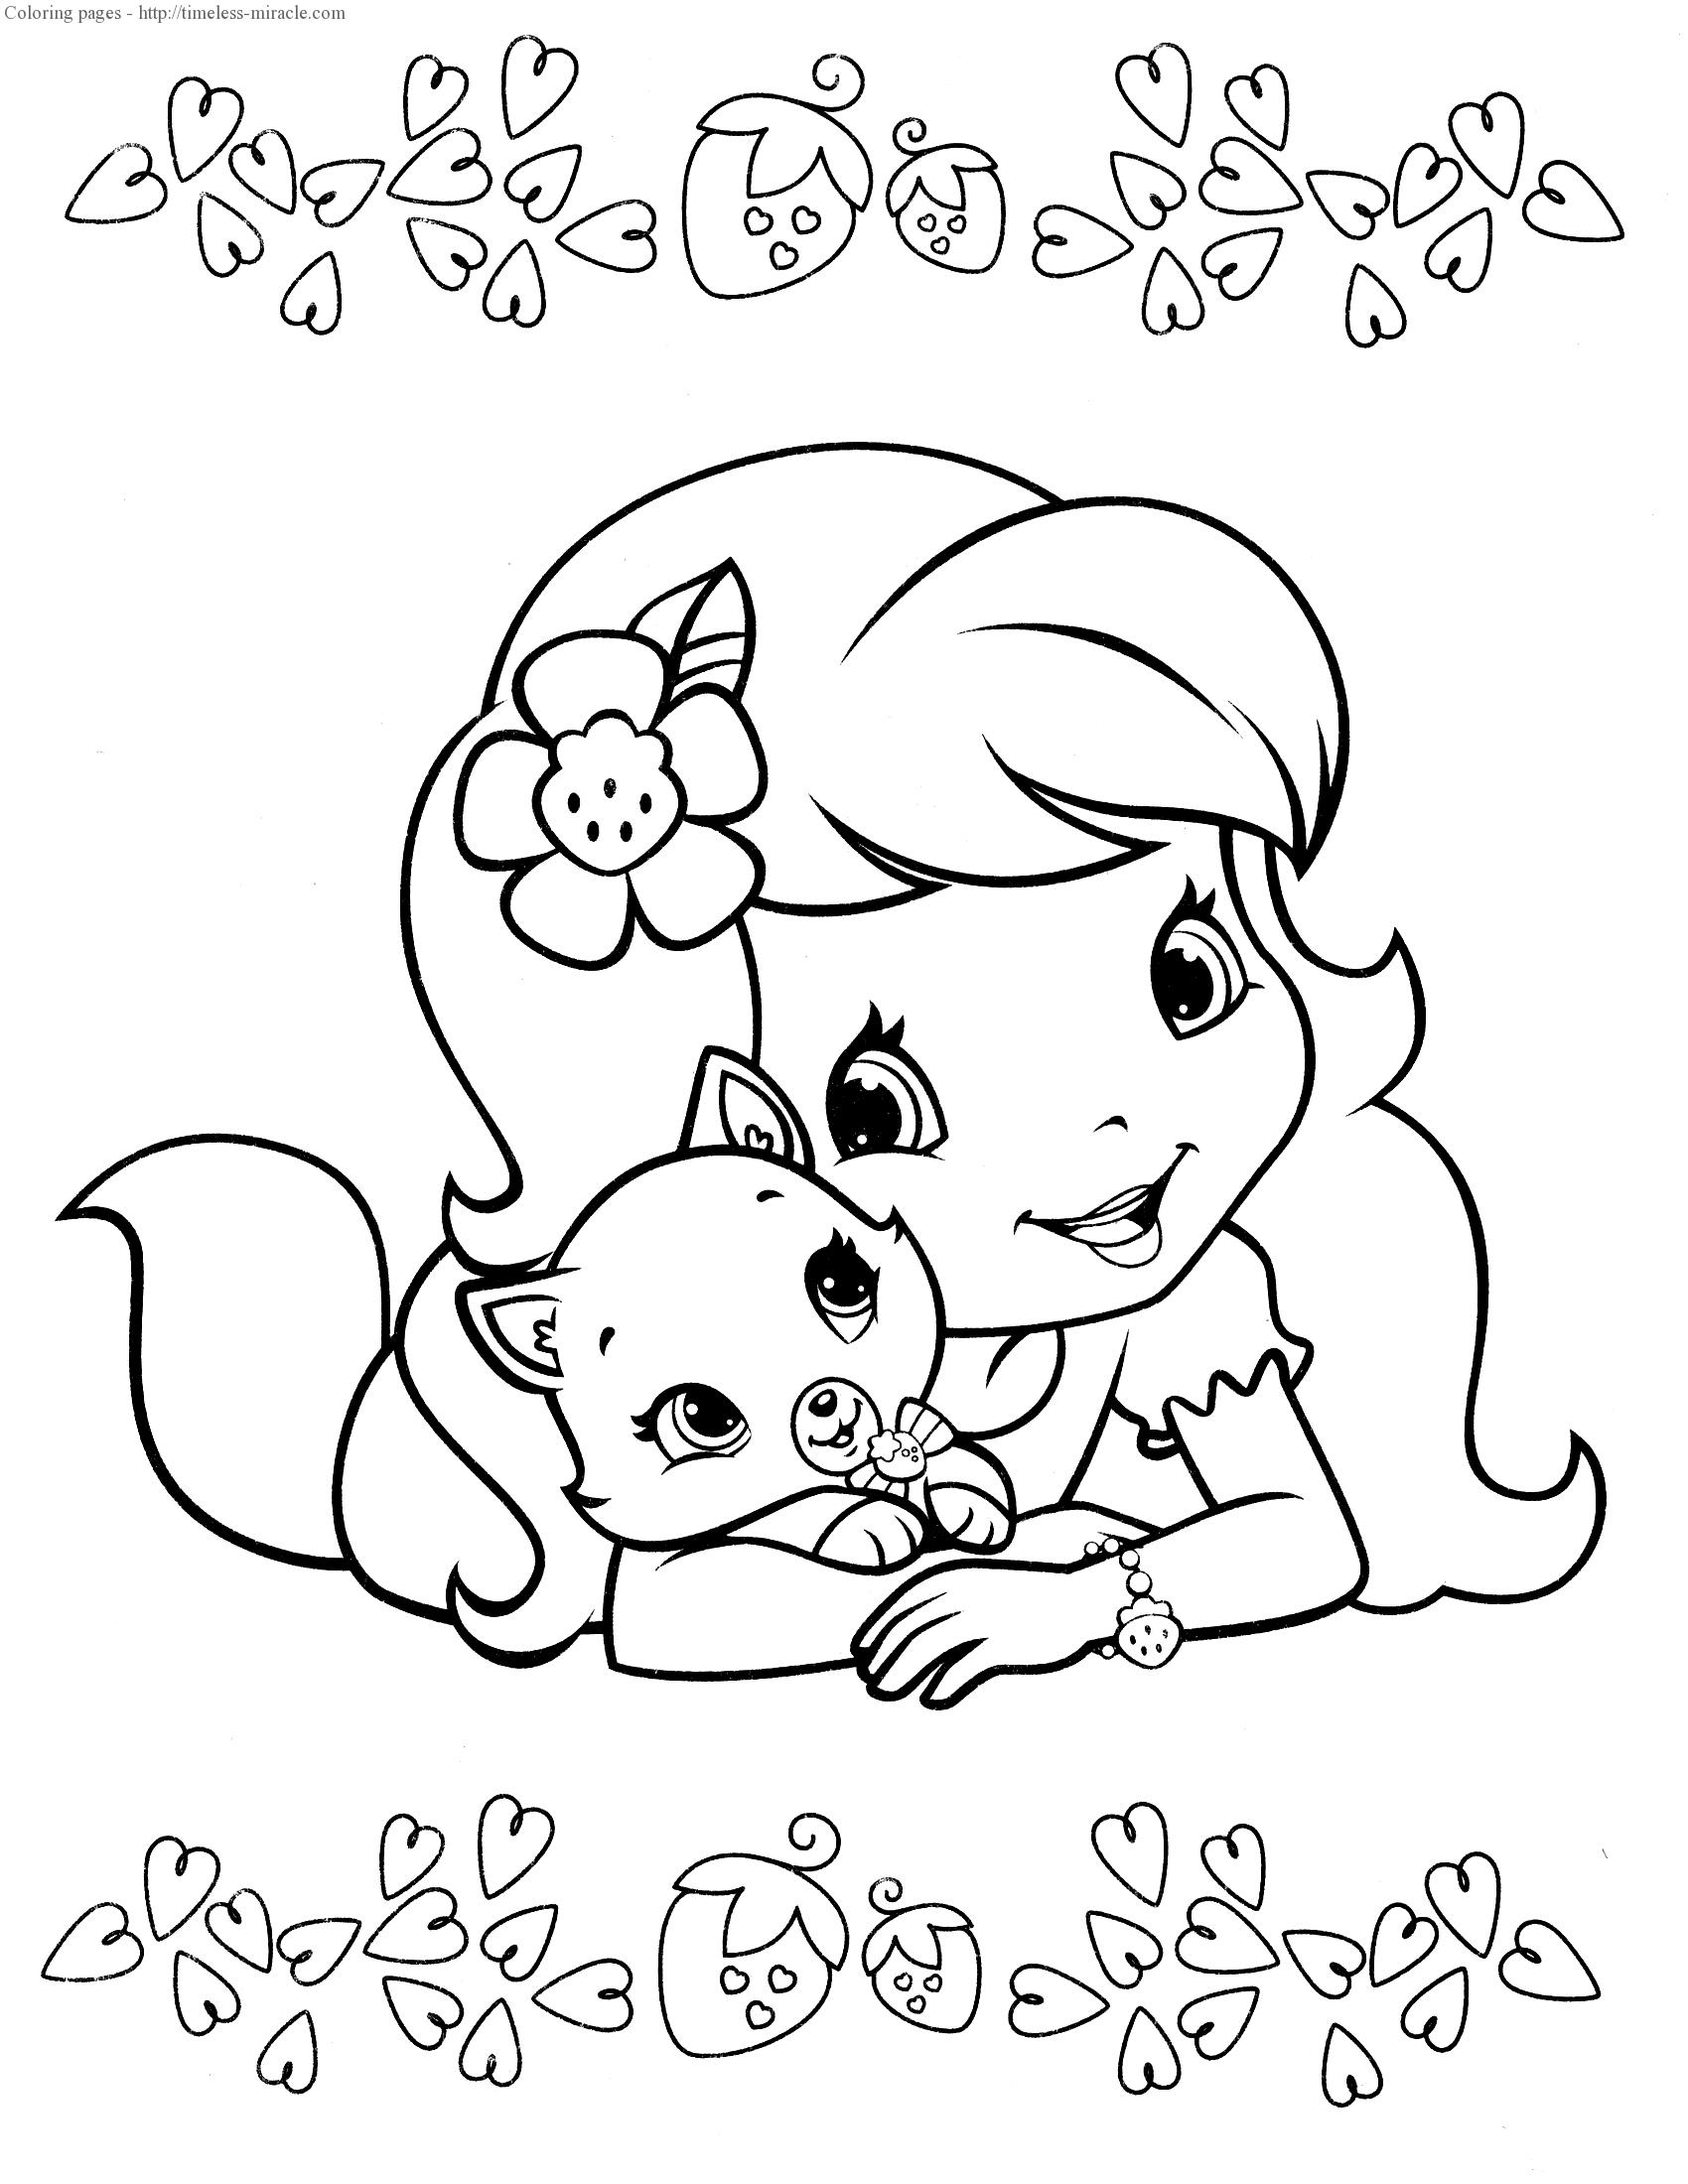 strawberry shortcake princess coloring pages strawberry shortcake coloring page with images mermaid coloring strawberry princess pages shortcake